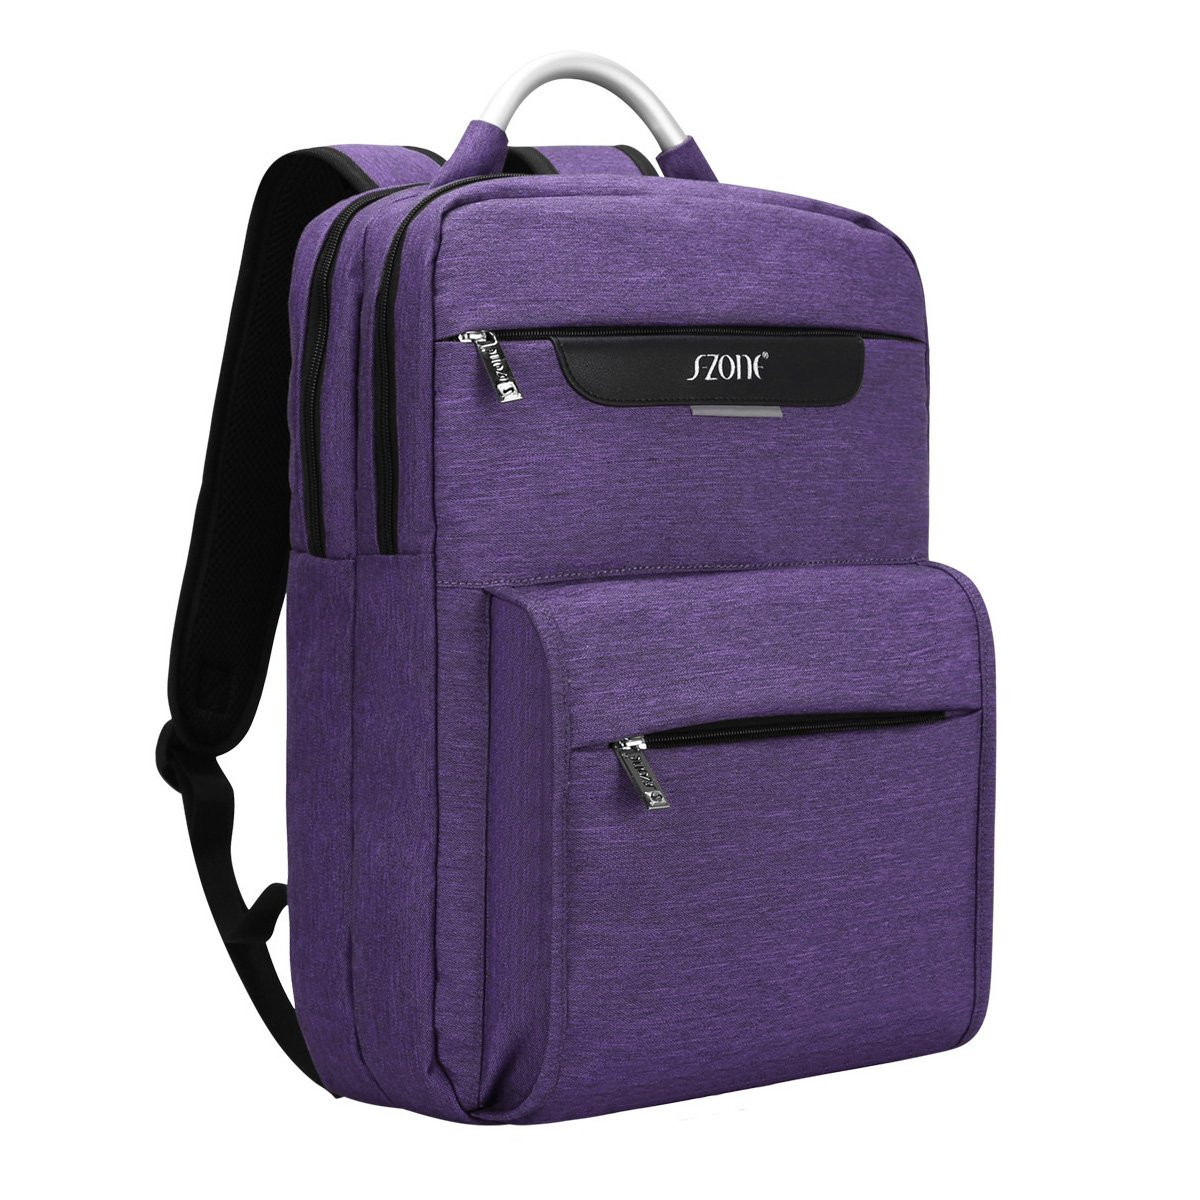 S-ZONE Lightweight 15.6-inch Laptop Backpack College School Backpacks Business Travel Daypack Purple S-ZONE D04V841C